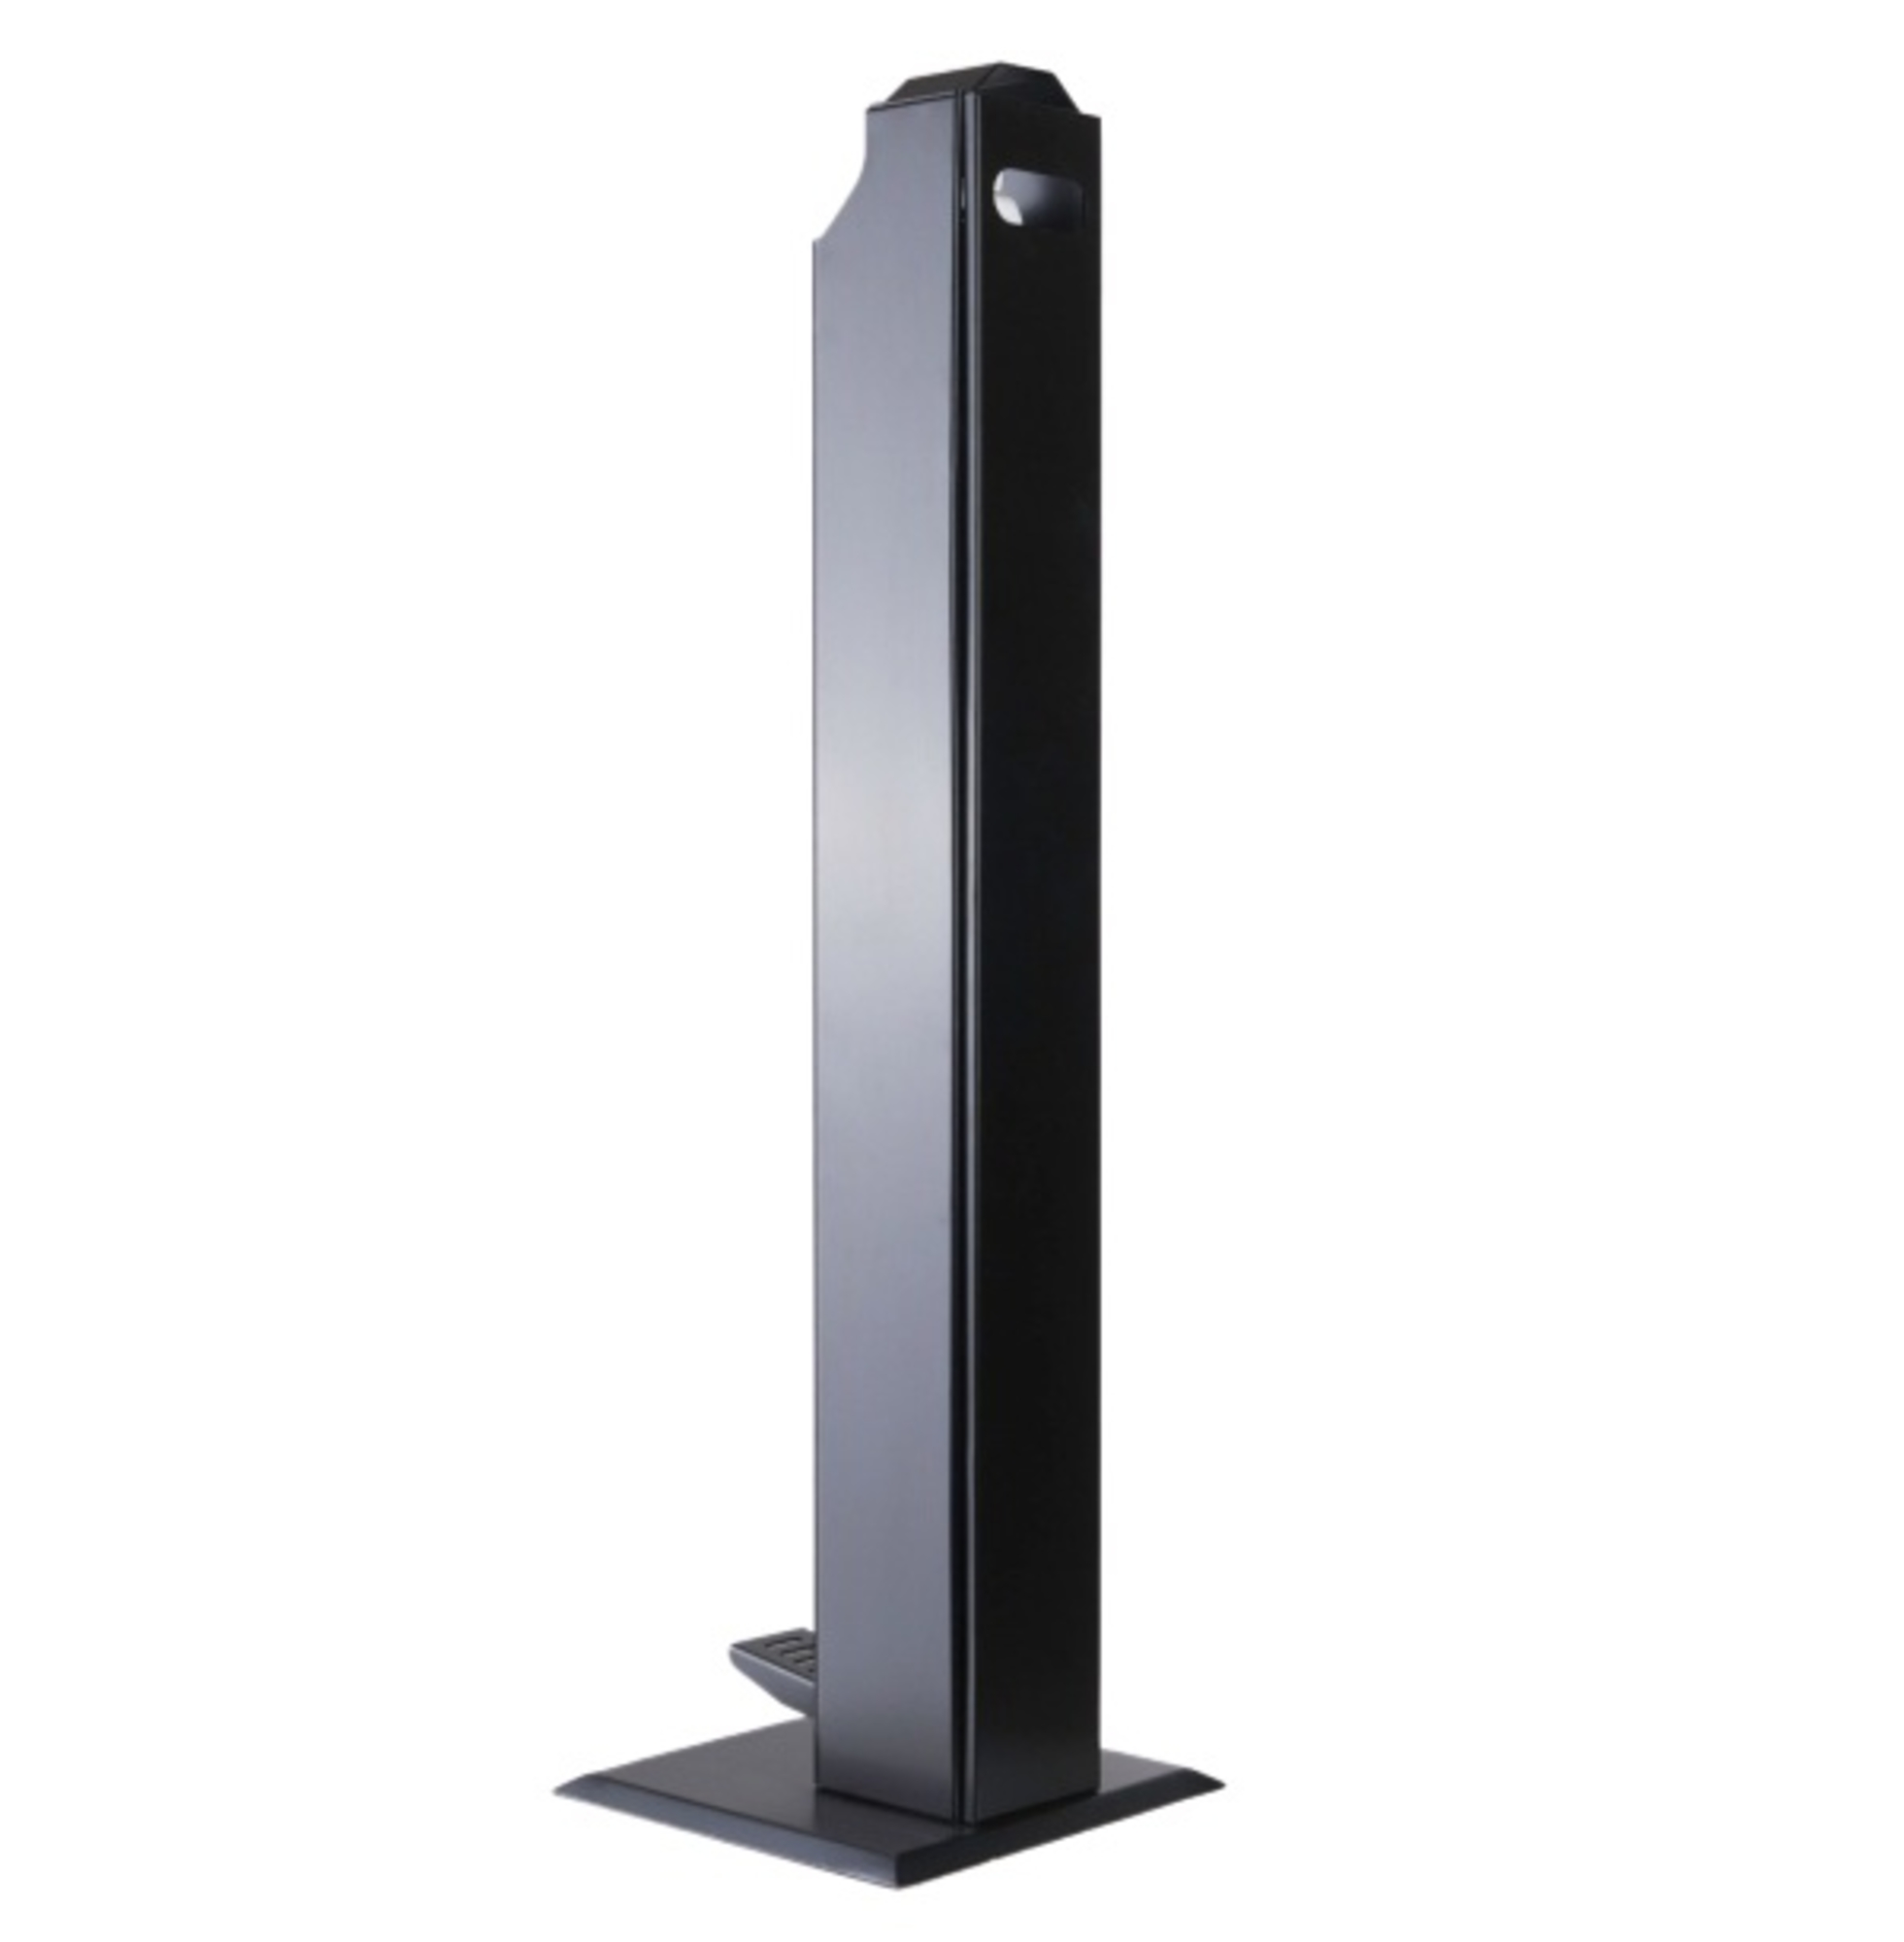 Antdecor Foot Disinfectant Corona Virus Stand (with Pedal) Black